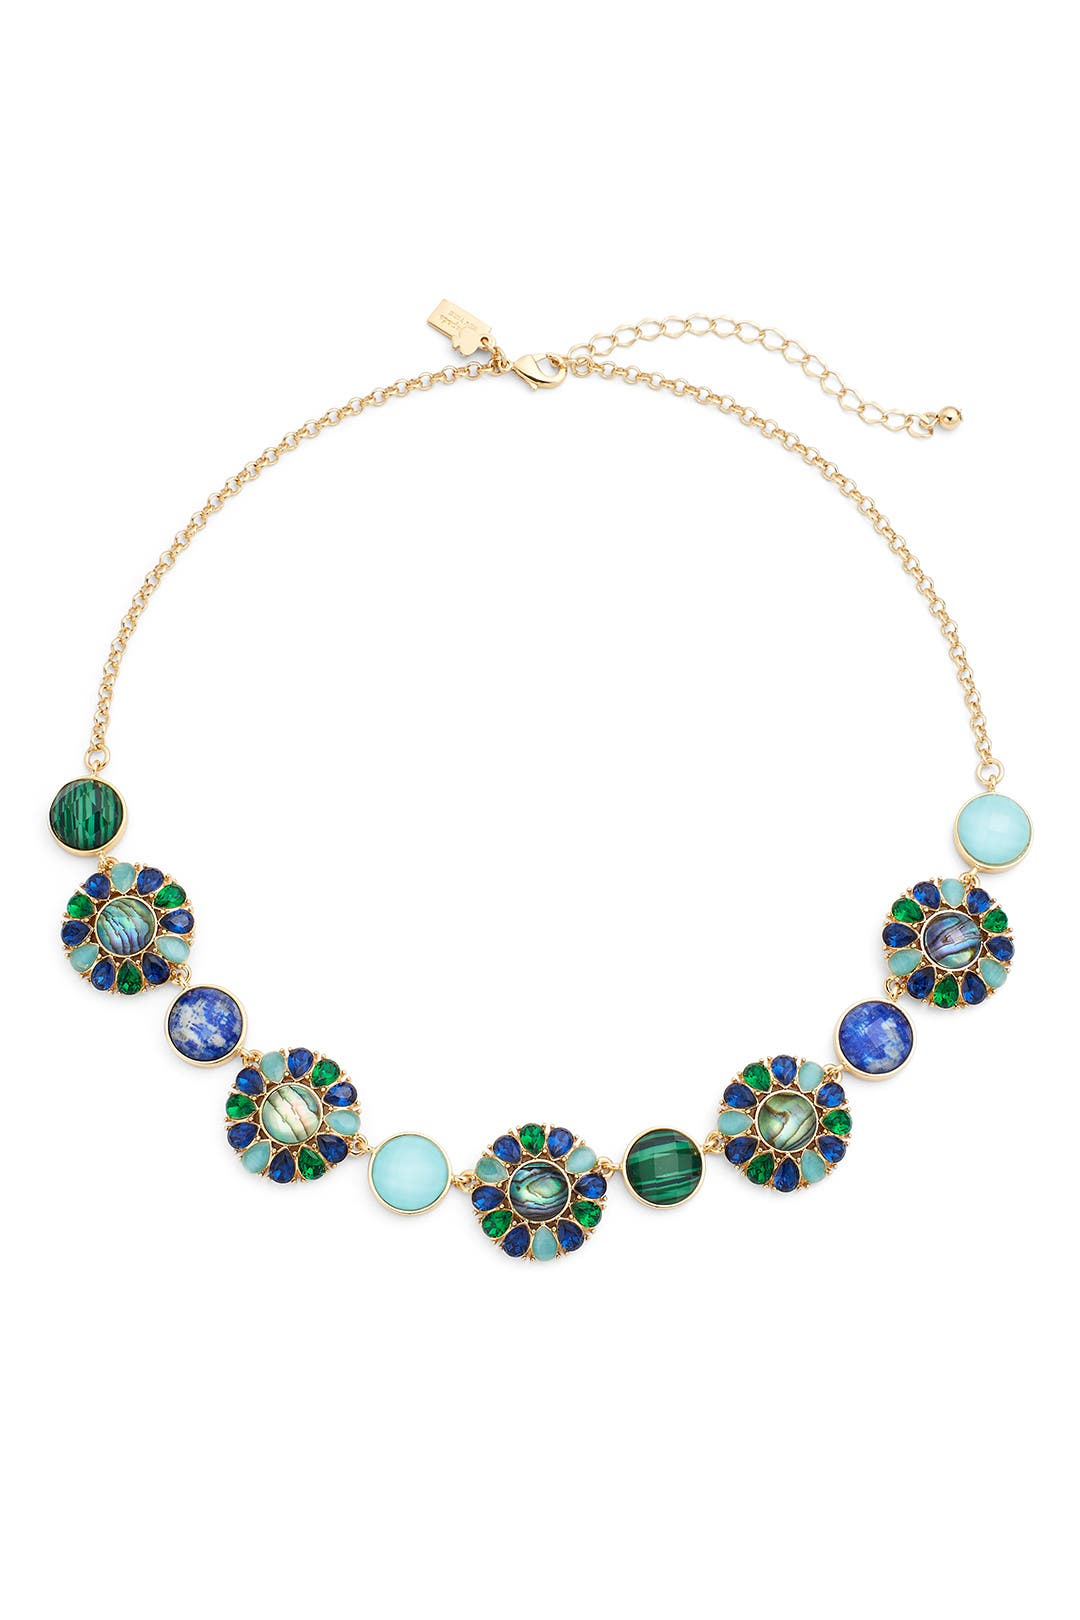 7fd562cdf6815 Necklaces - kate spade new york accessories Great selection and ...